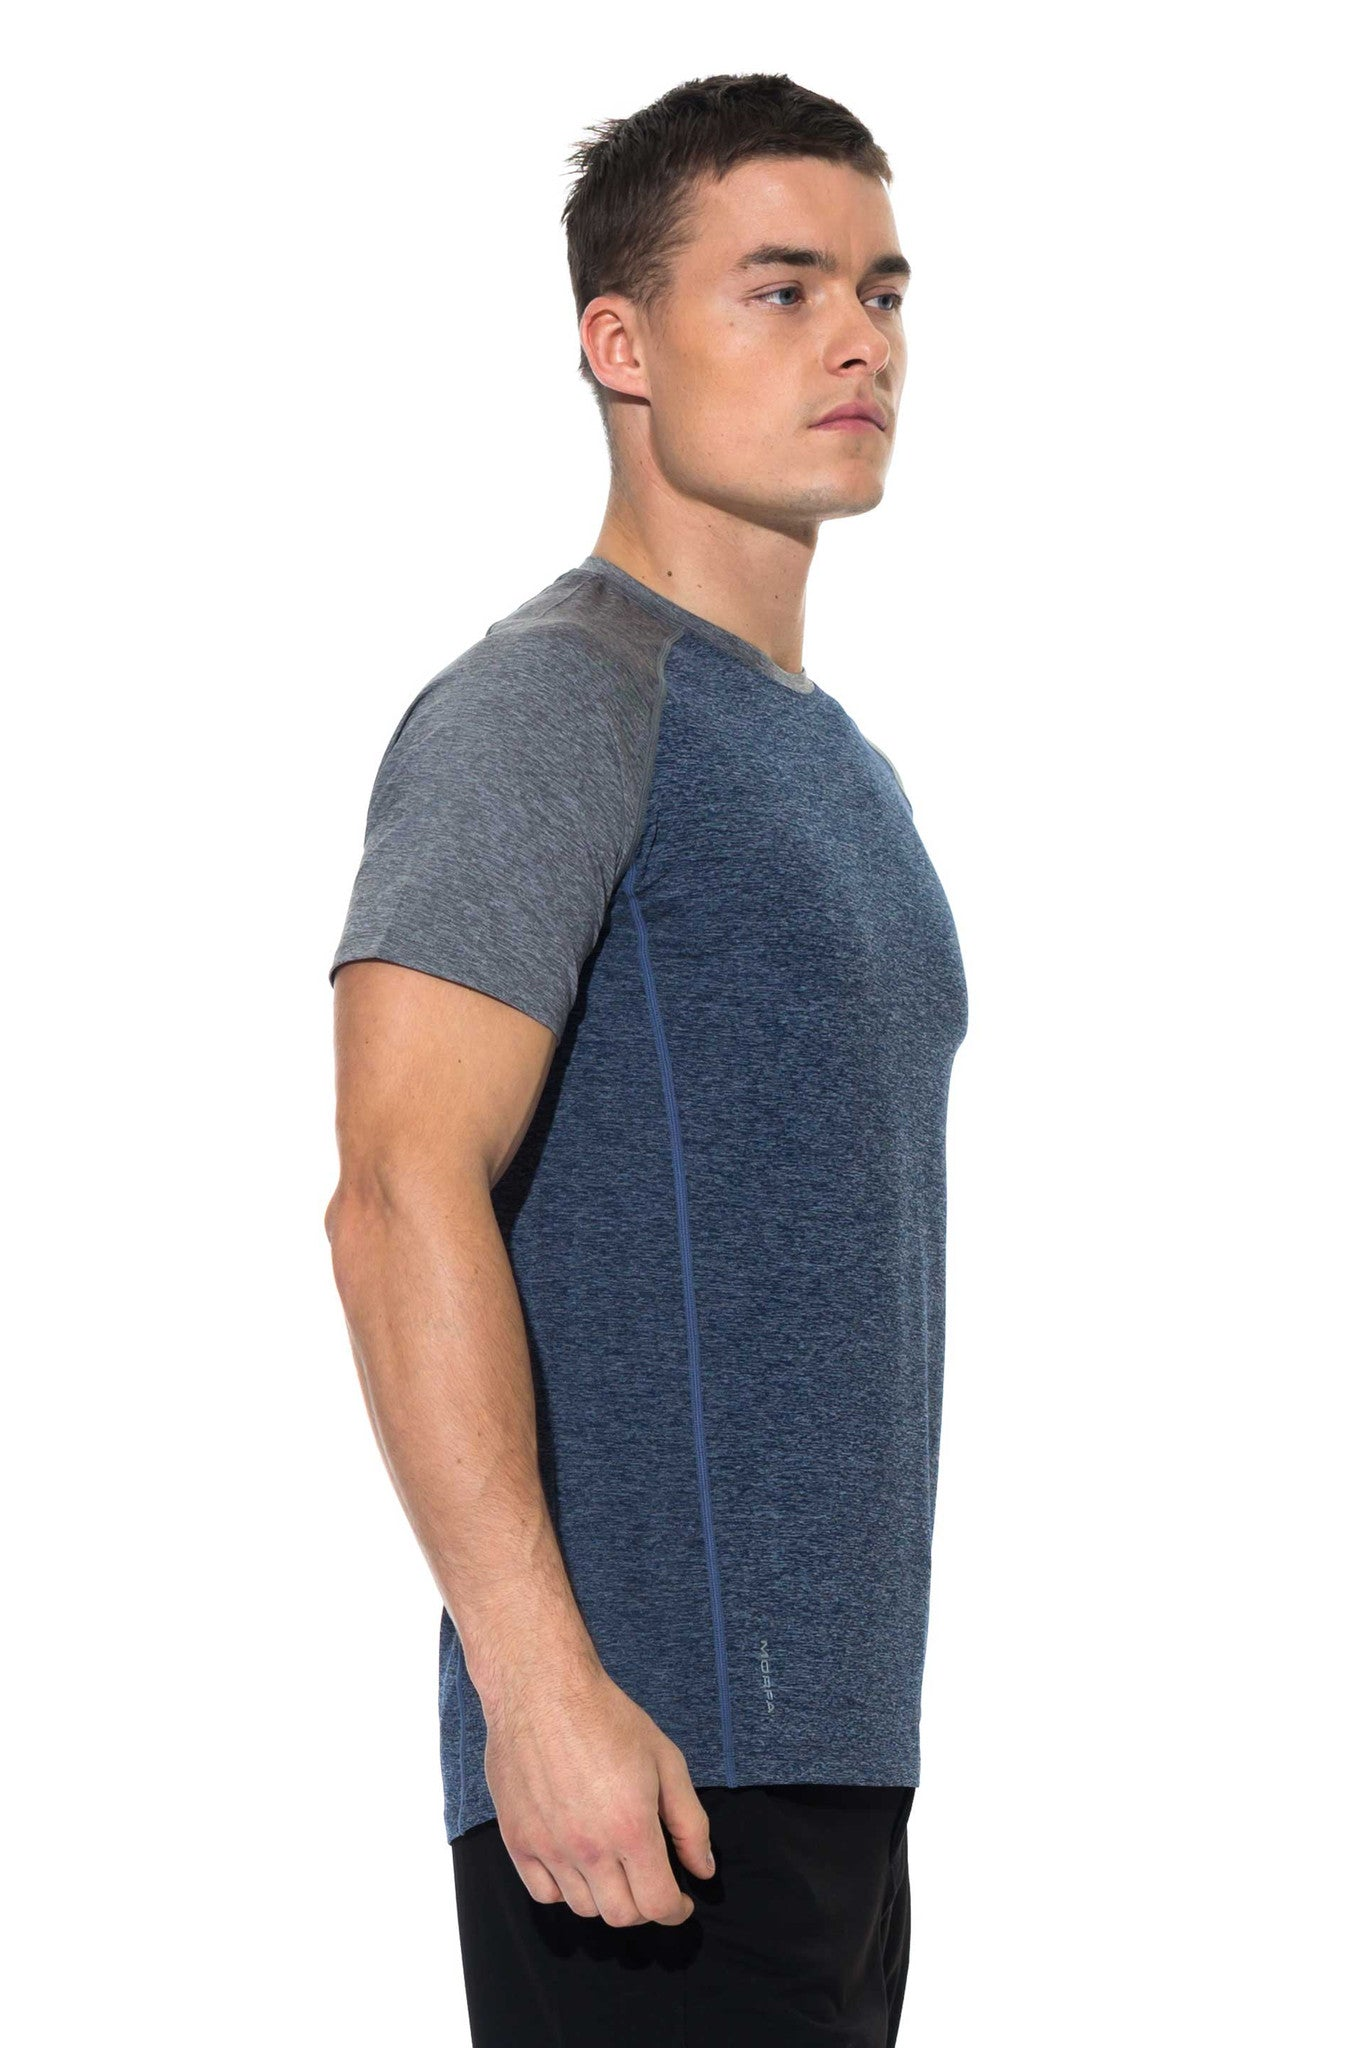 CORE T-SHIRT - ECLIPSE/STEEL